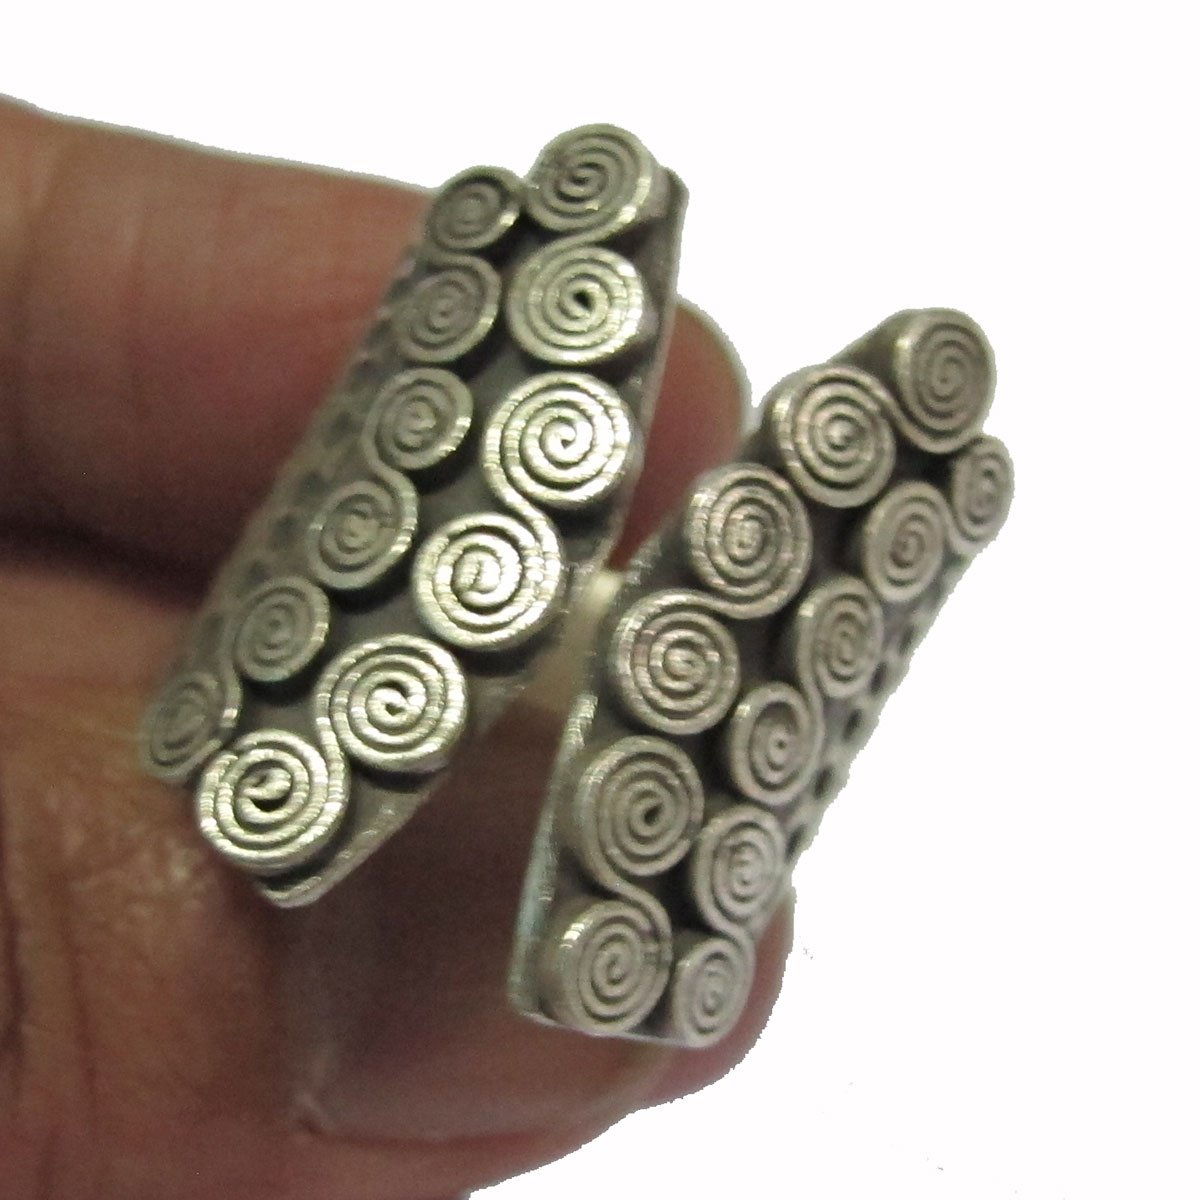 Size 8 No Cool Hill Tribe Silver Ring Weight 13.36 G By Handmade ADJUSTABLE 8-9 {HILL TRIBE RING BOX 20/_105}